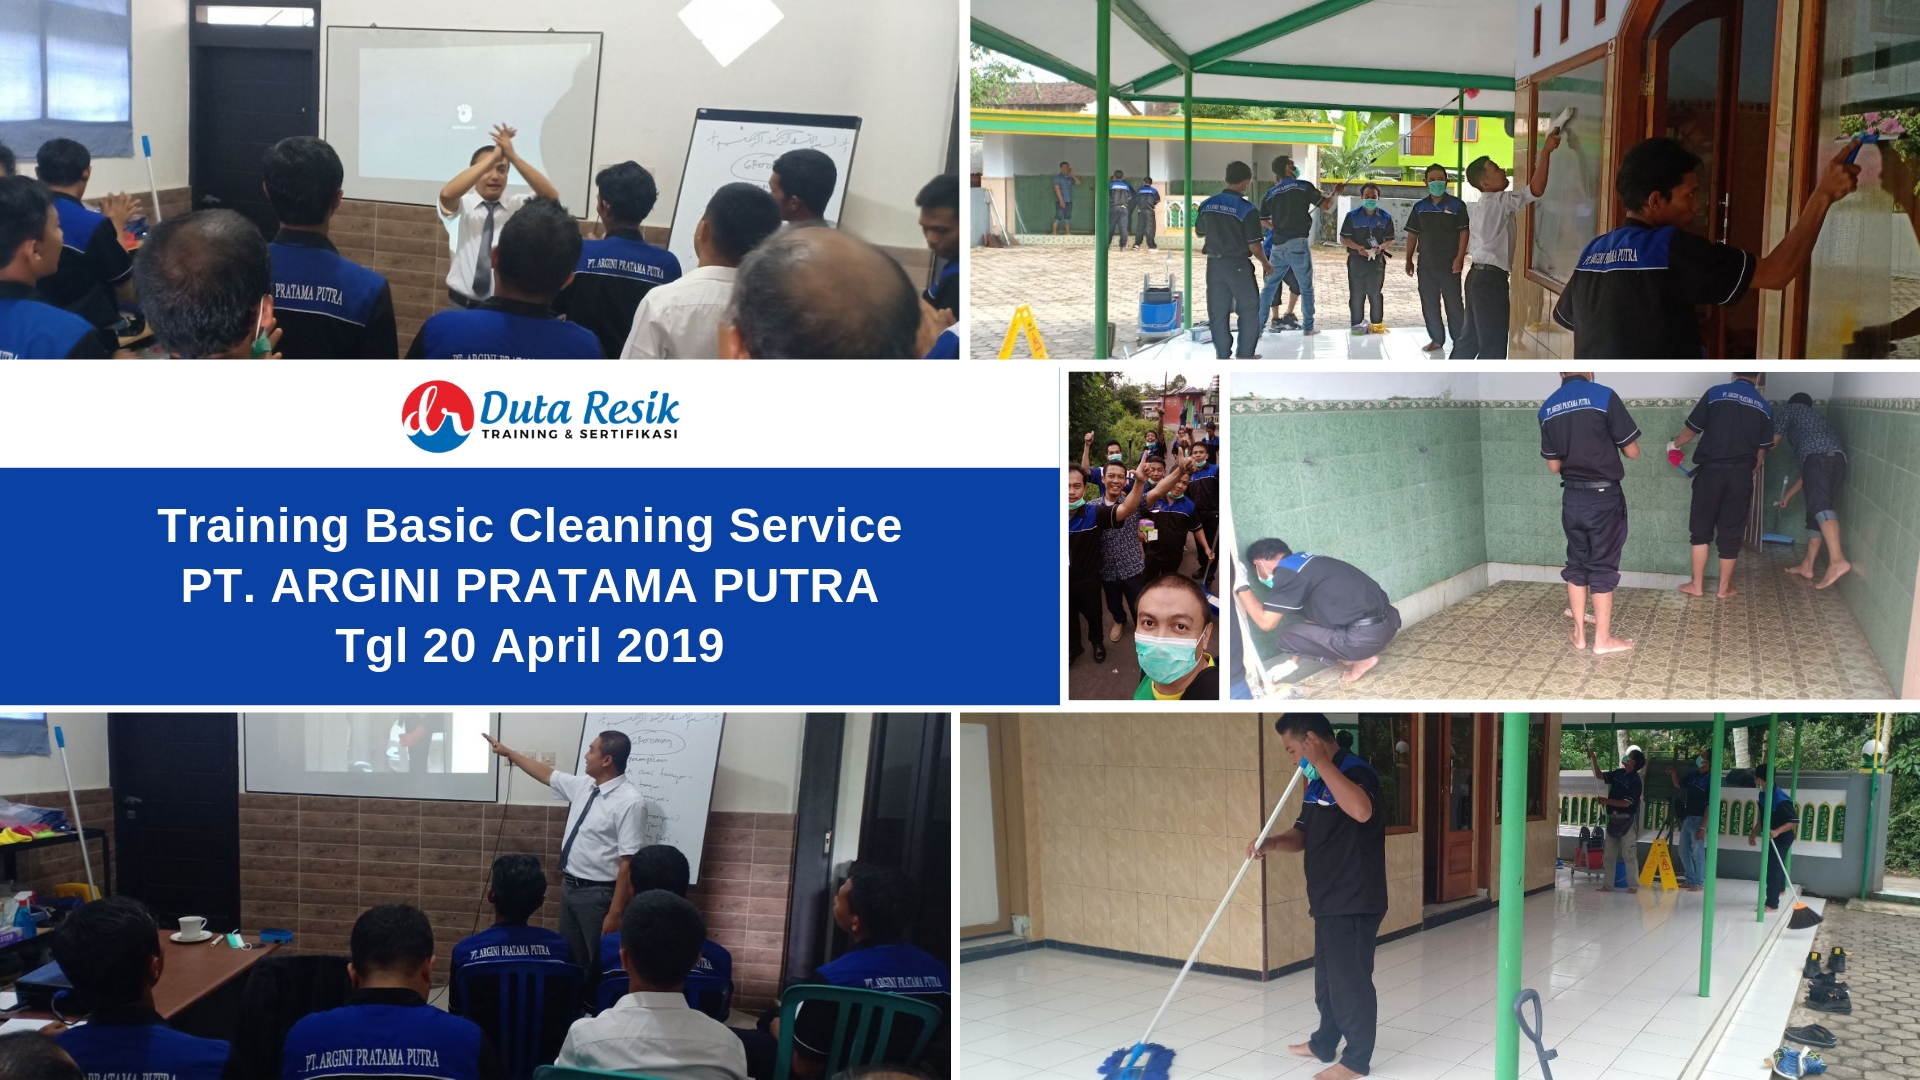 Training Basic Cleaning Service di PT. Argini